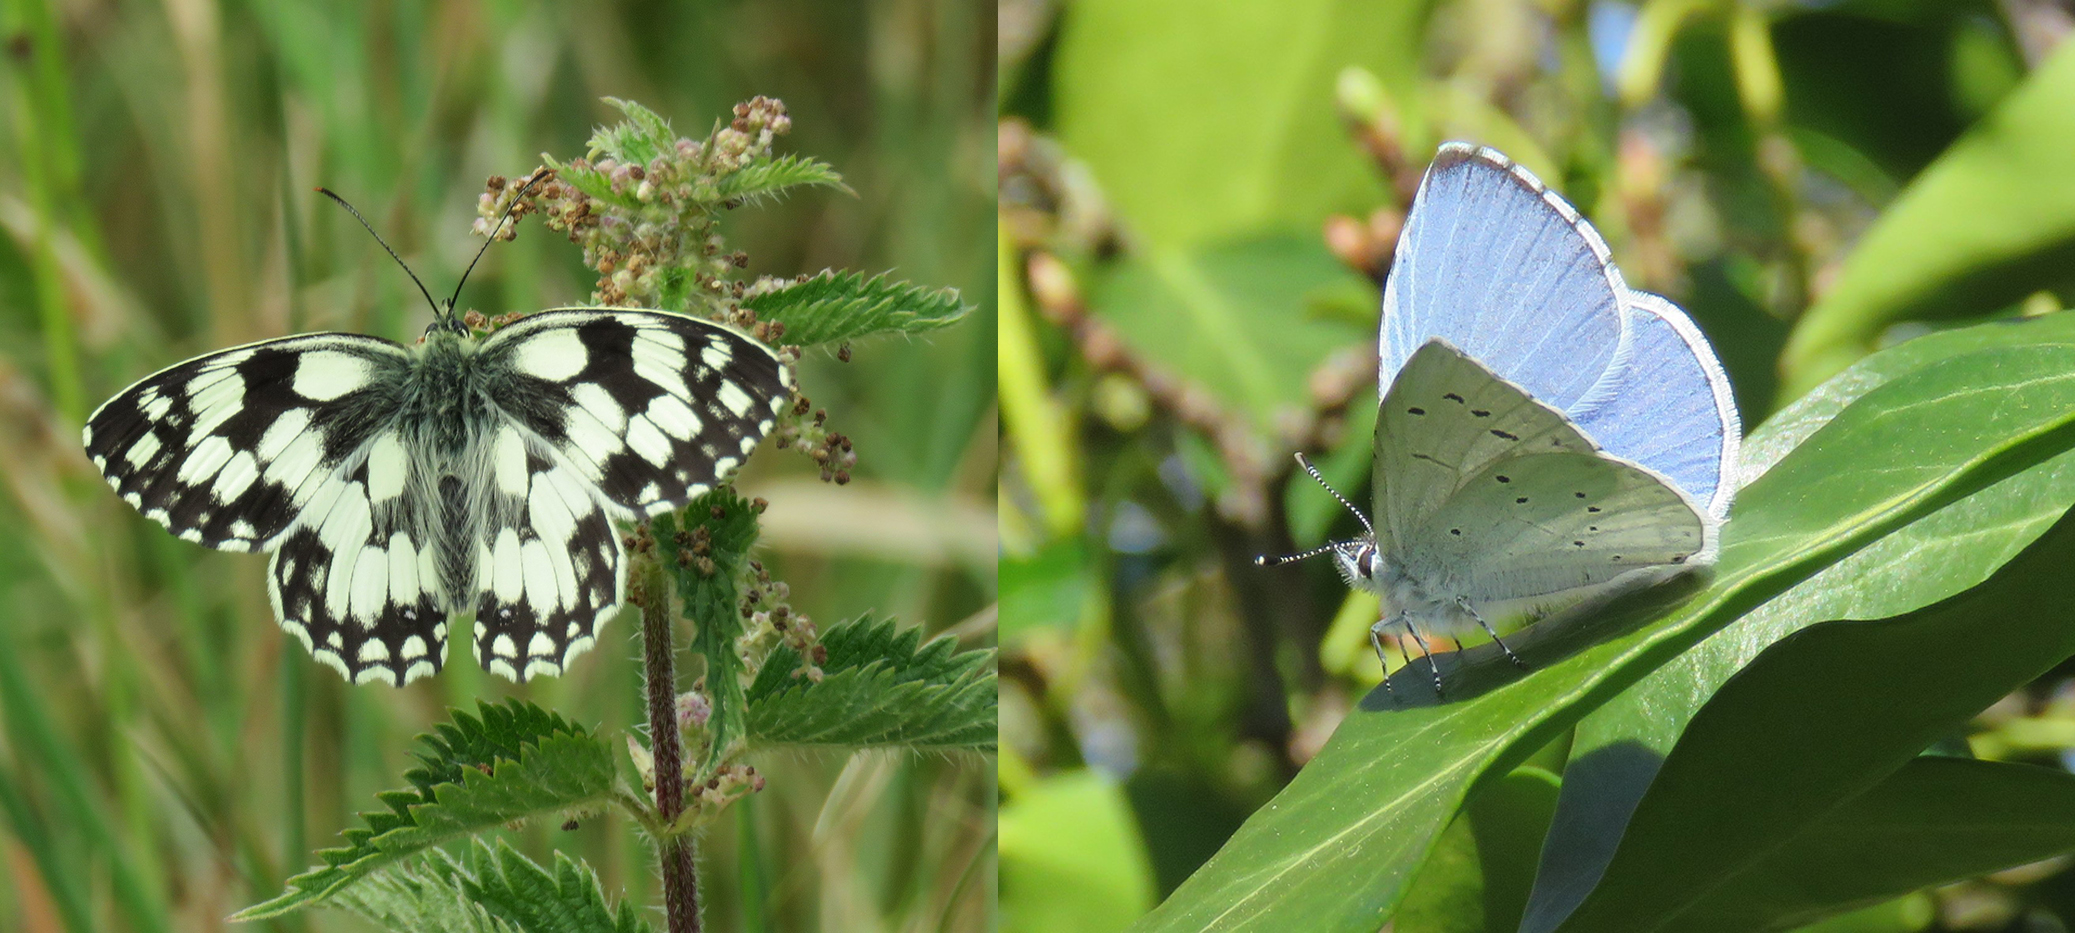 Marbled White butterfly and Holly Blue butterfly have been seen at Warwick Spinney. Photo credit: Benson Nature Group